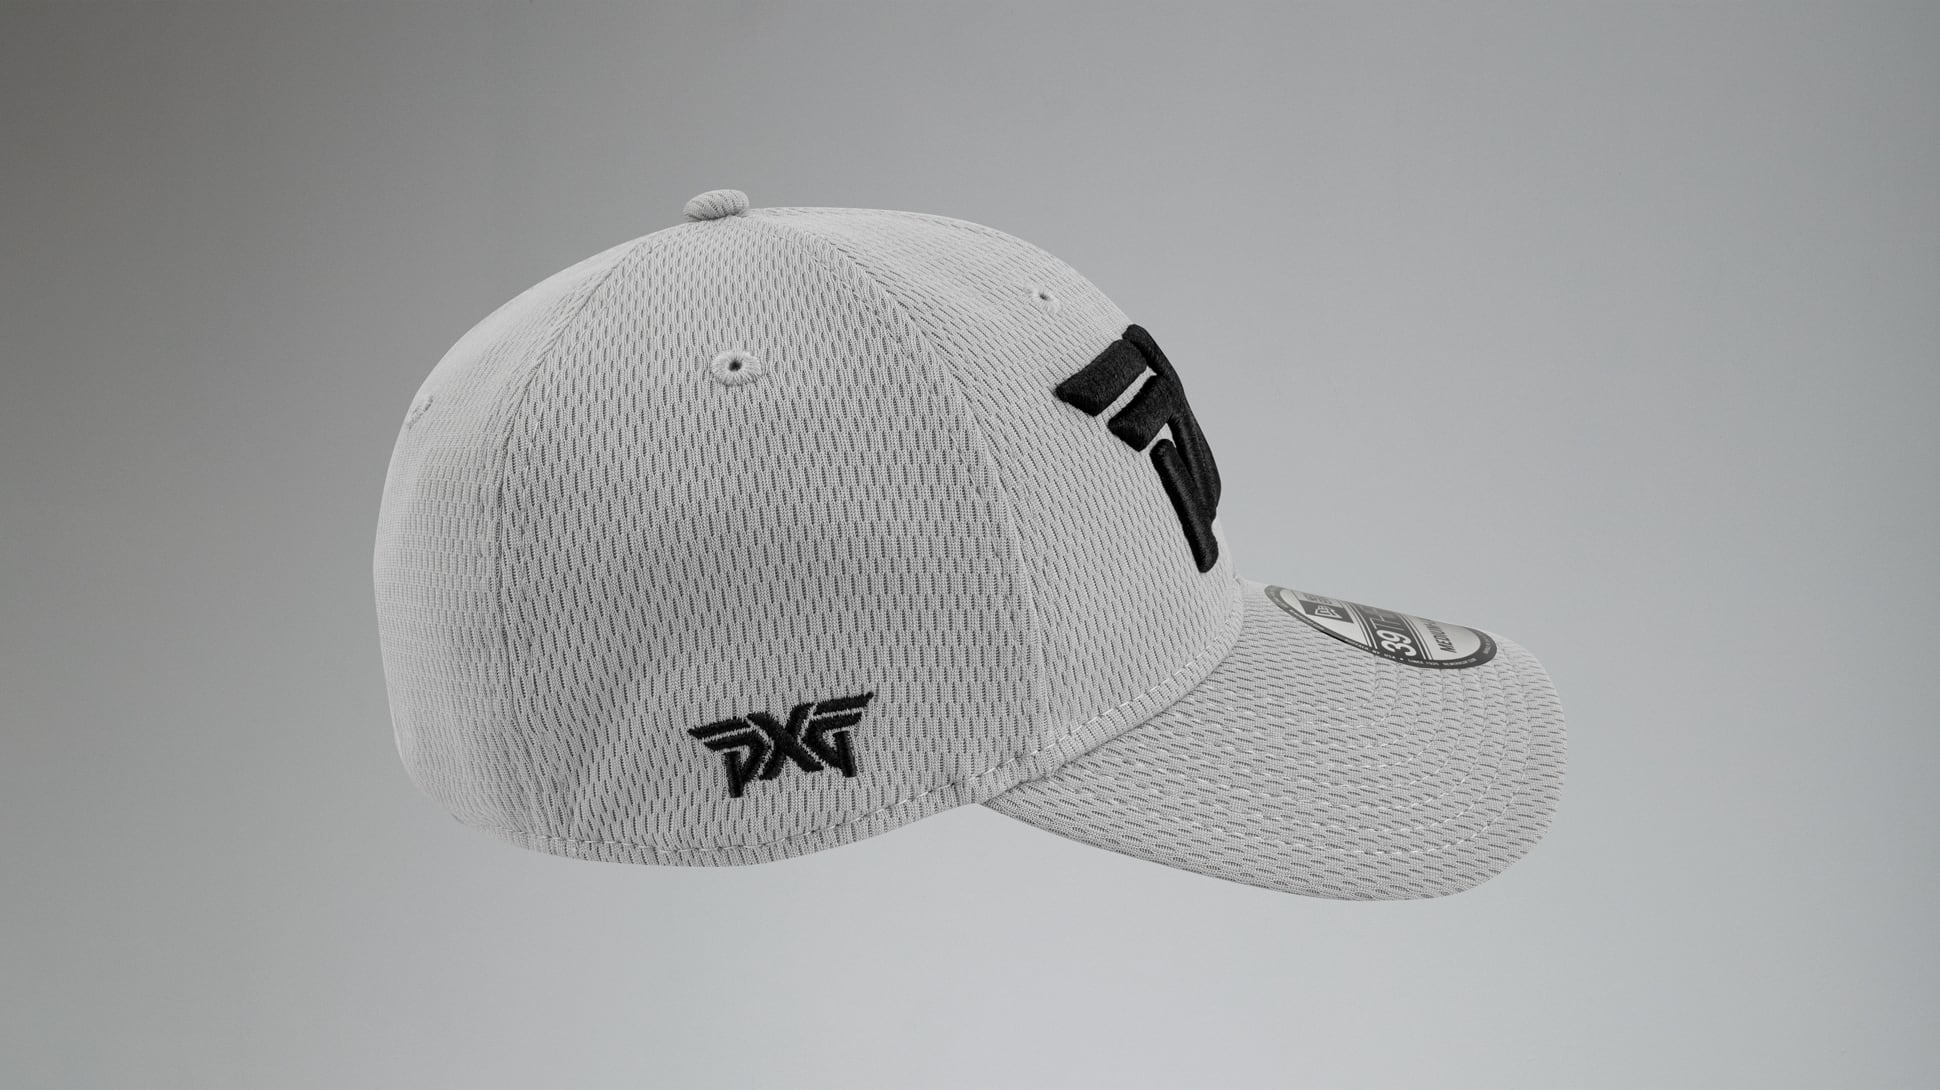 Performance Line 39THIRTY Stretch Fit Cap Image 3